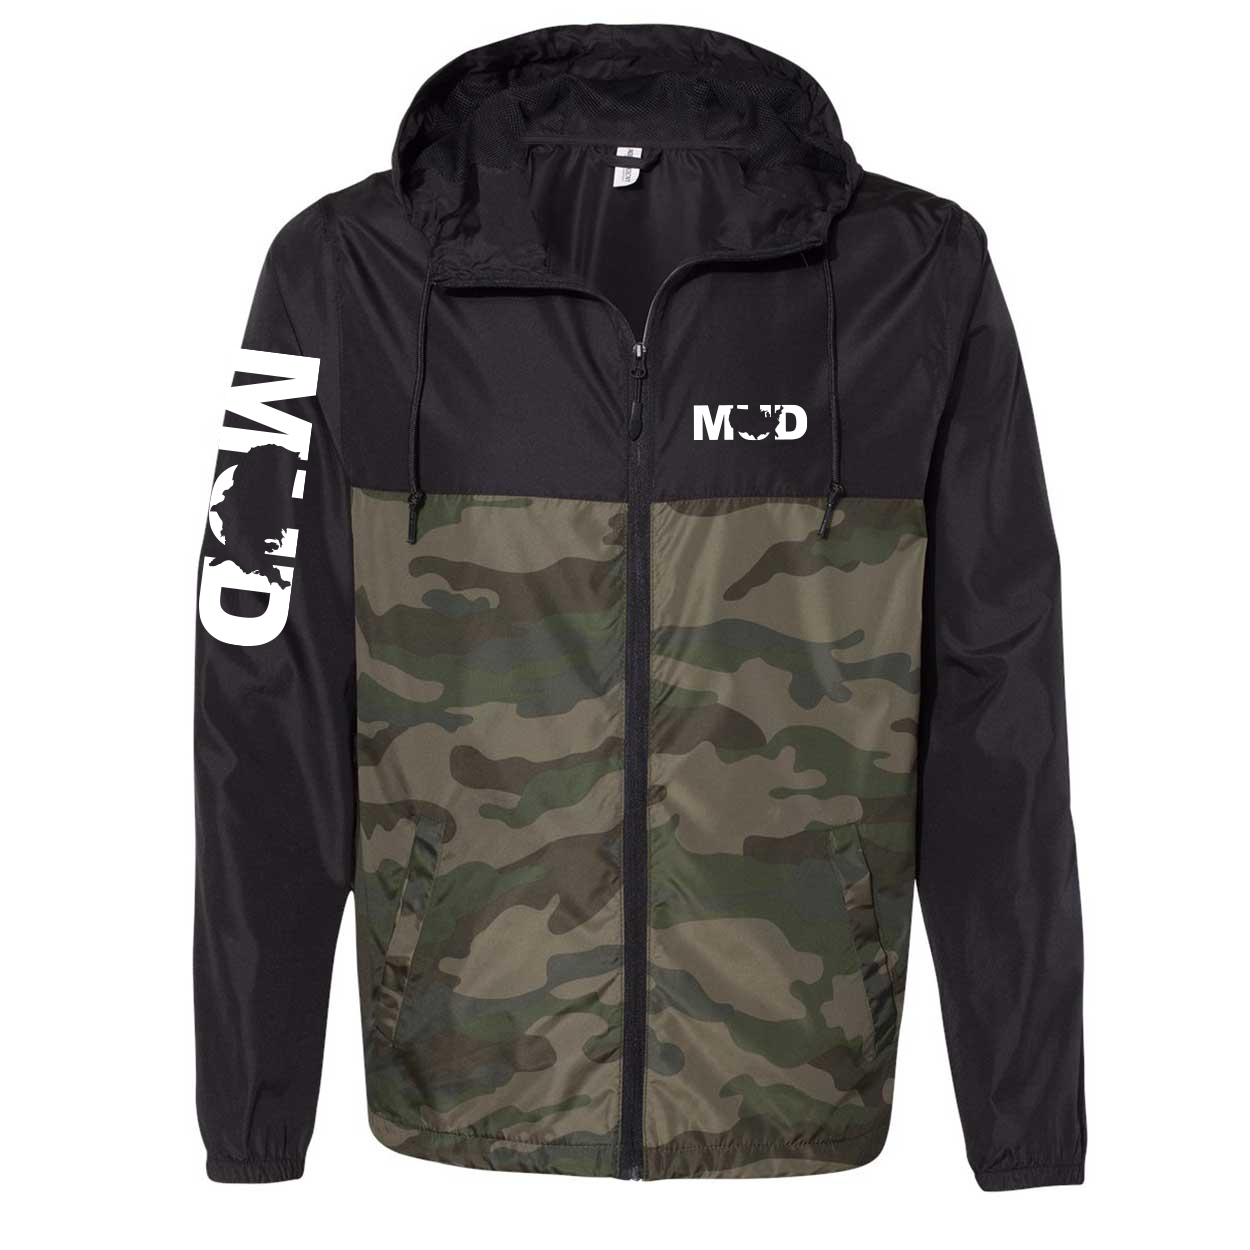 Mud United States Classic Lightweight Windbreaker Black/Forest Camo (White Logo)